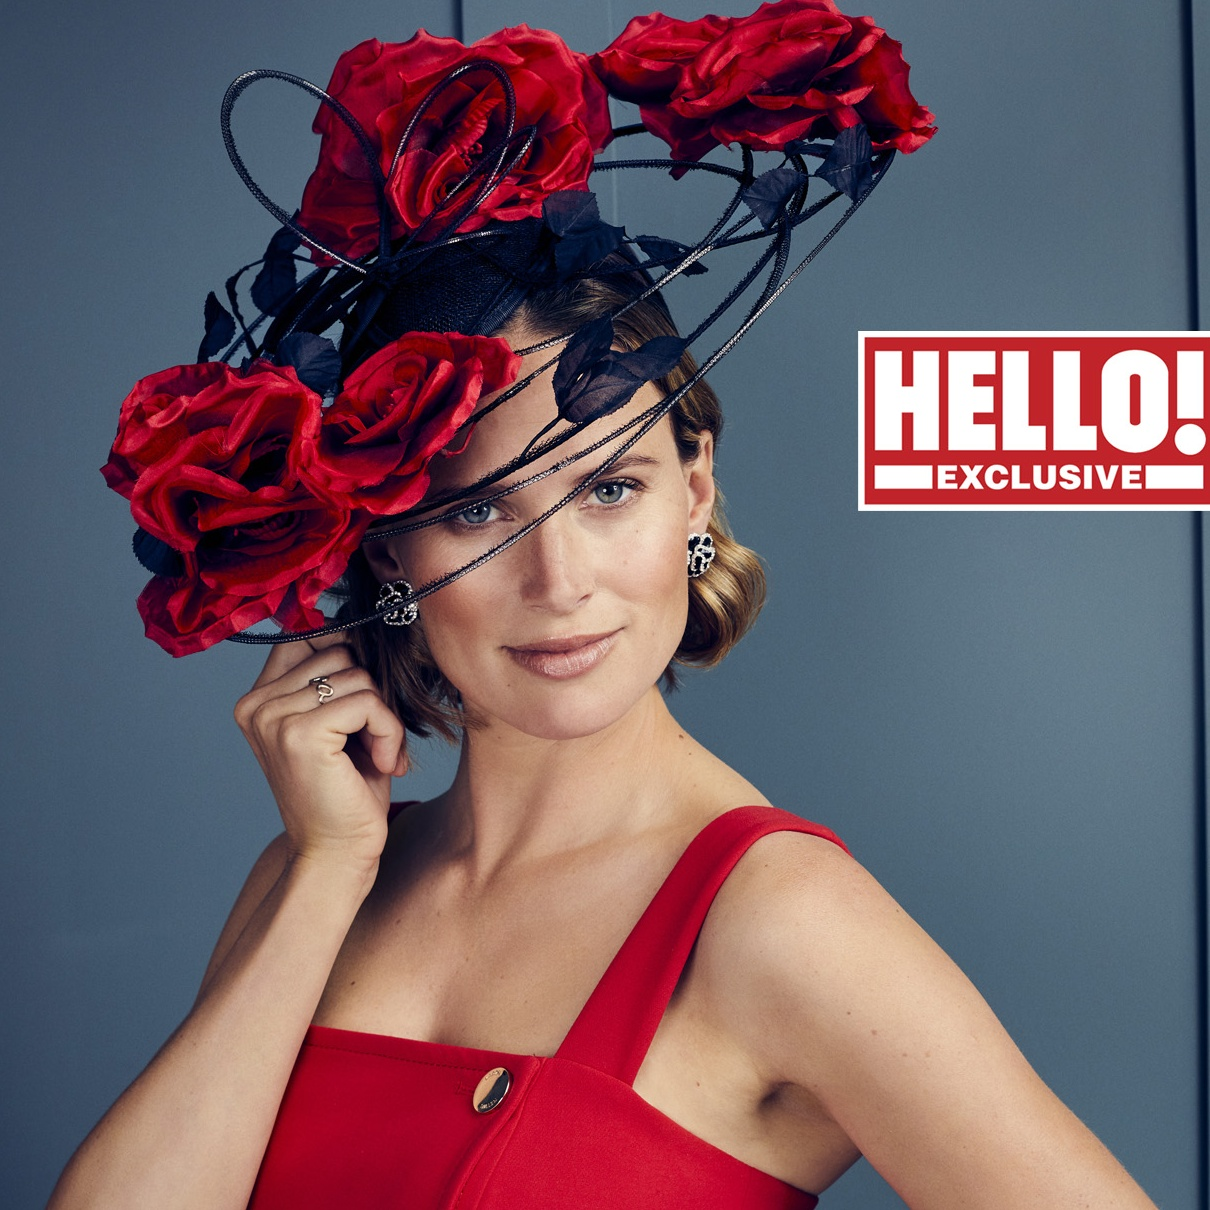 Francesca Cumani in Hello!